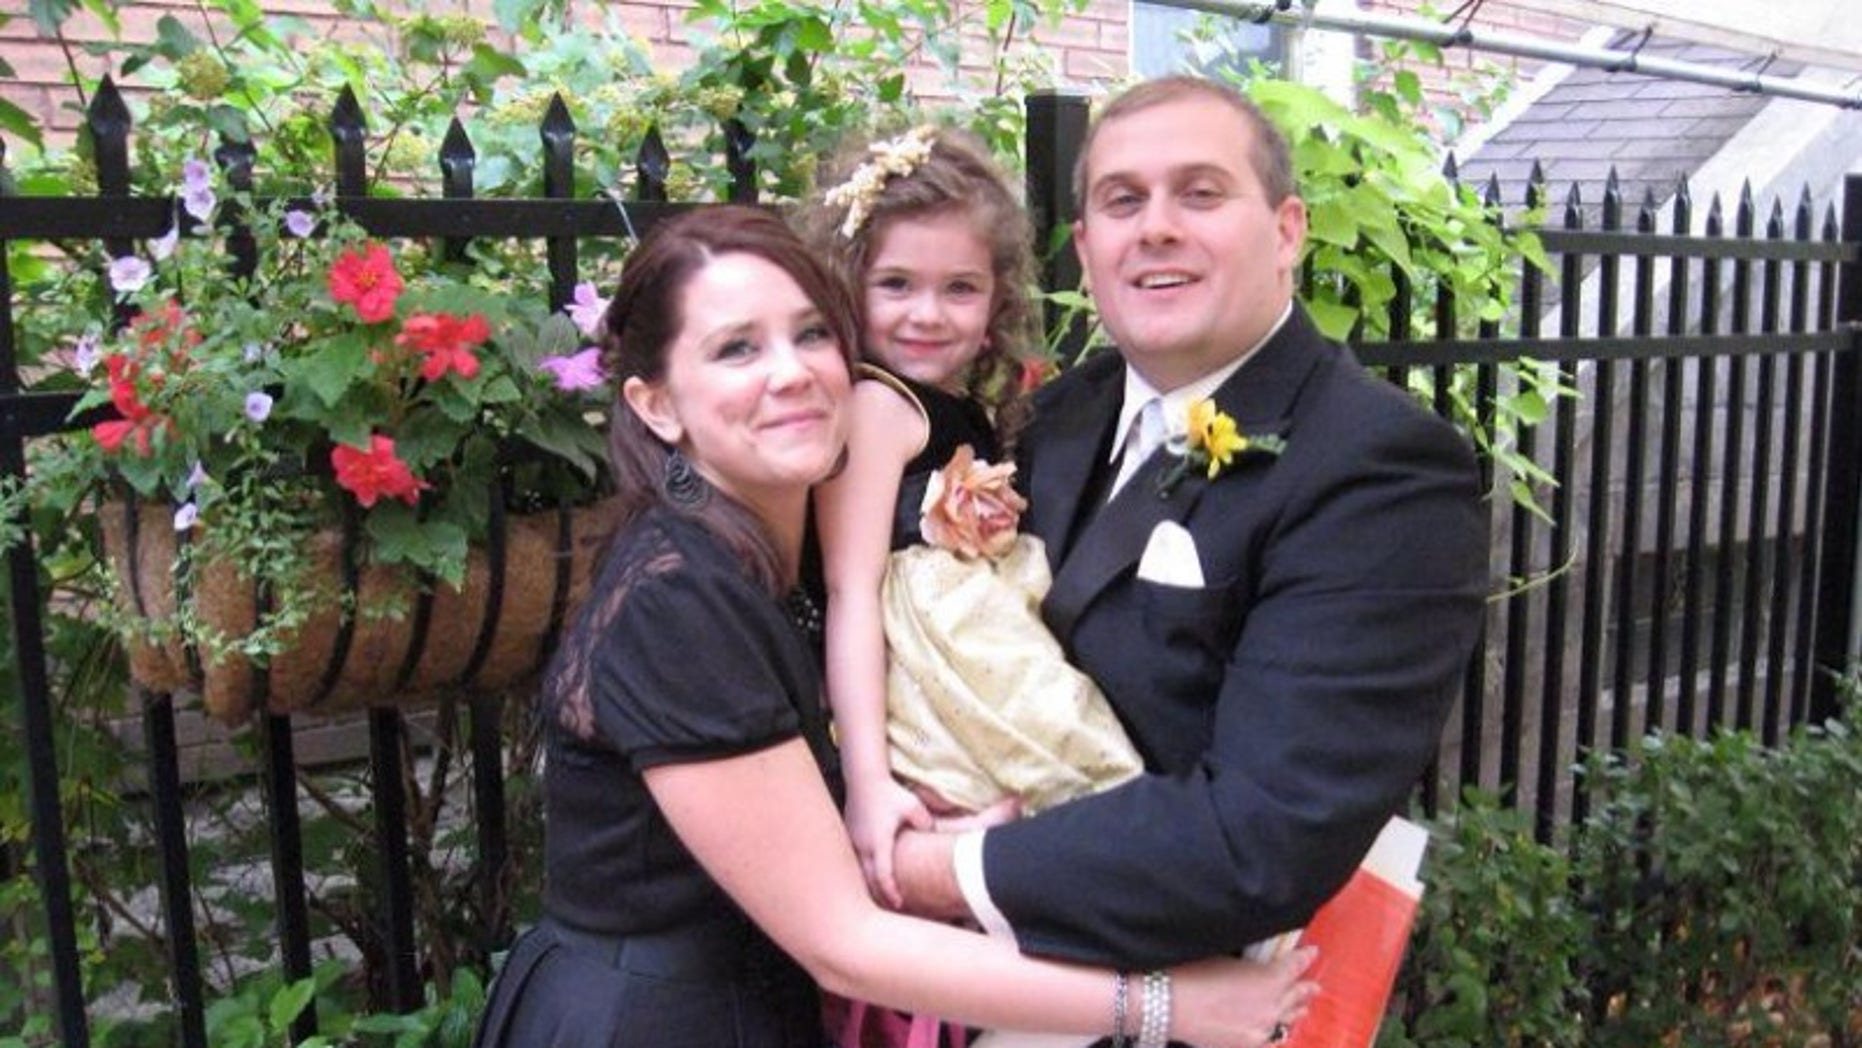 Amee and Chris Banks pose with their daughter, Persephonee, who died Thursday of a rare strep infection.